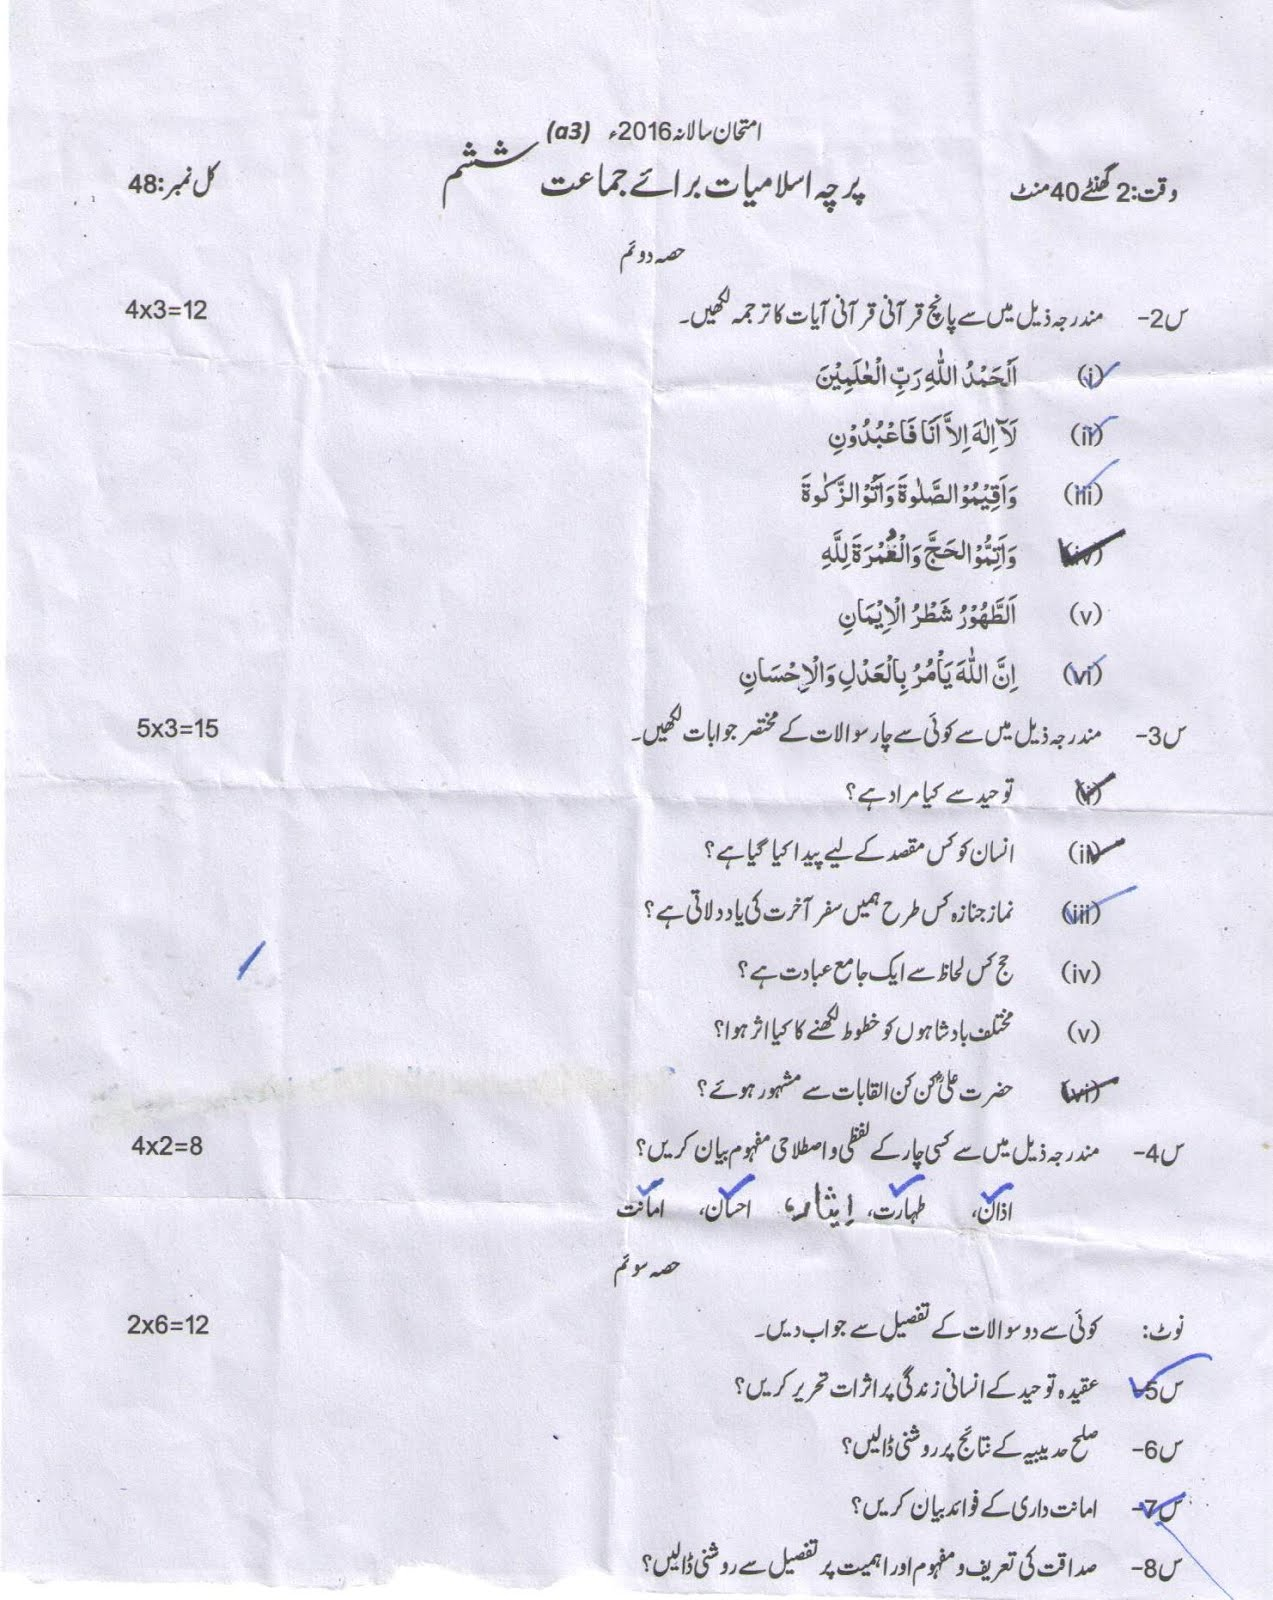 6th Class Old Question Papers (2016) for Islamabad Model